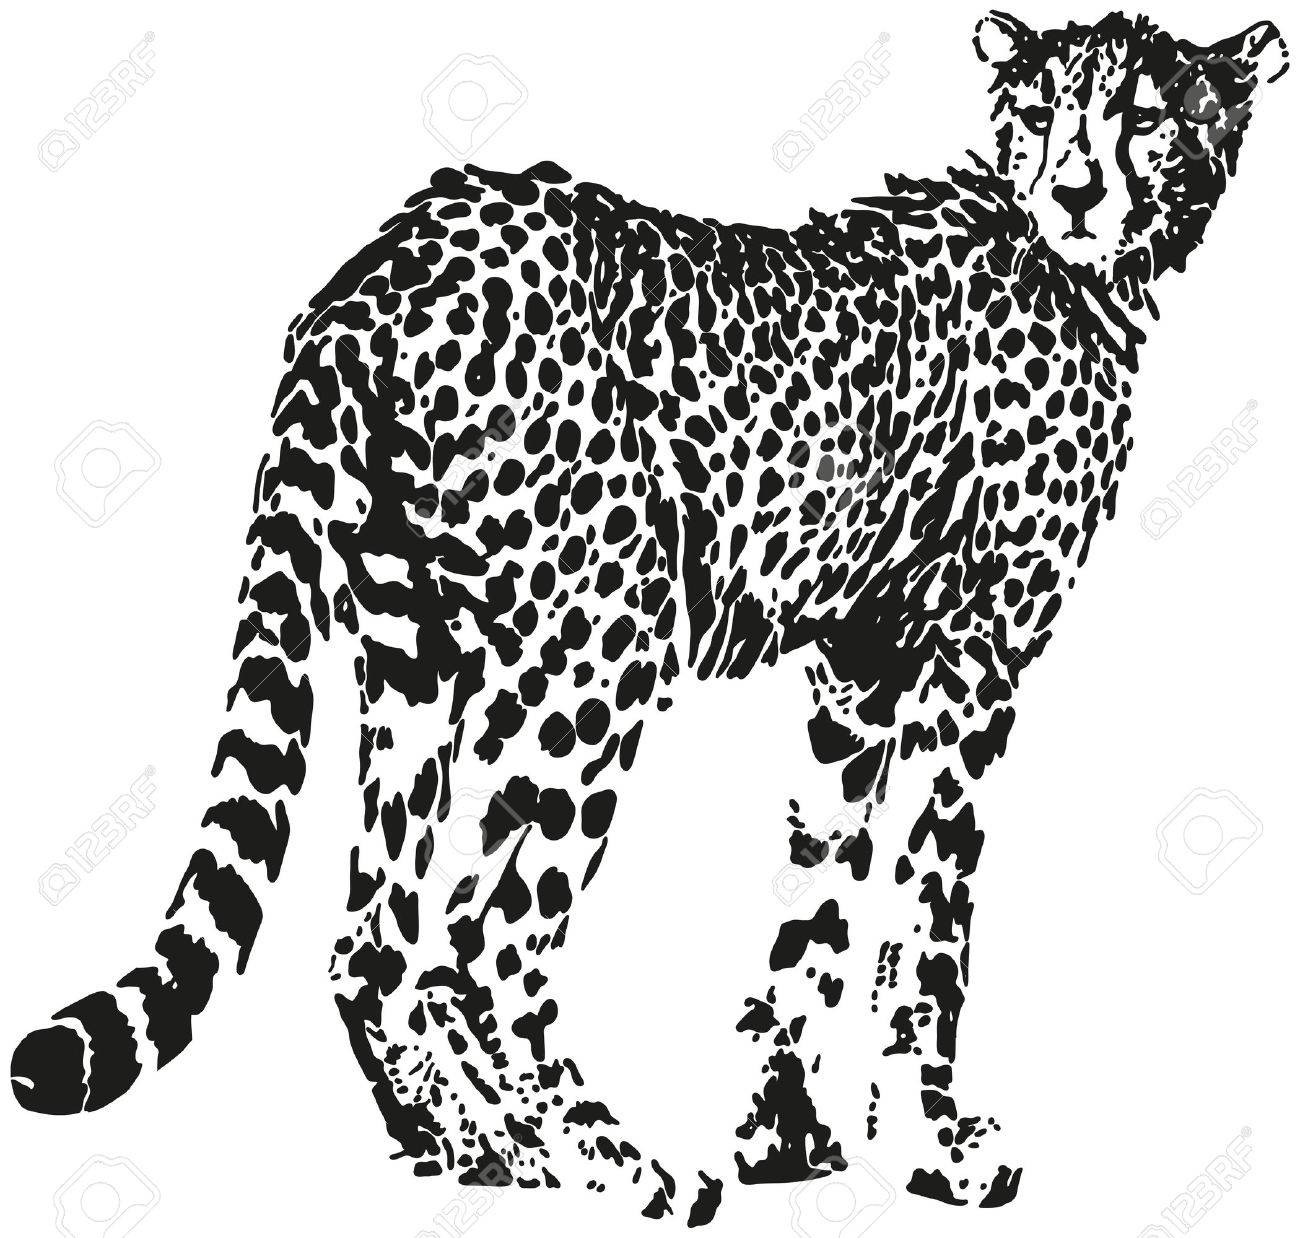 Leopard big cat shaped from black spots optical illusion stock vector 28054520